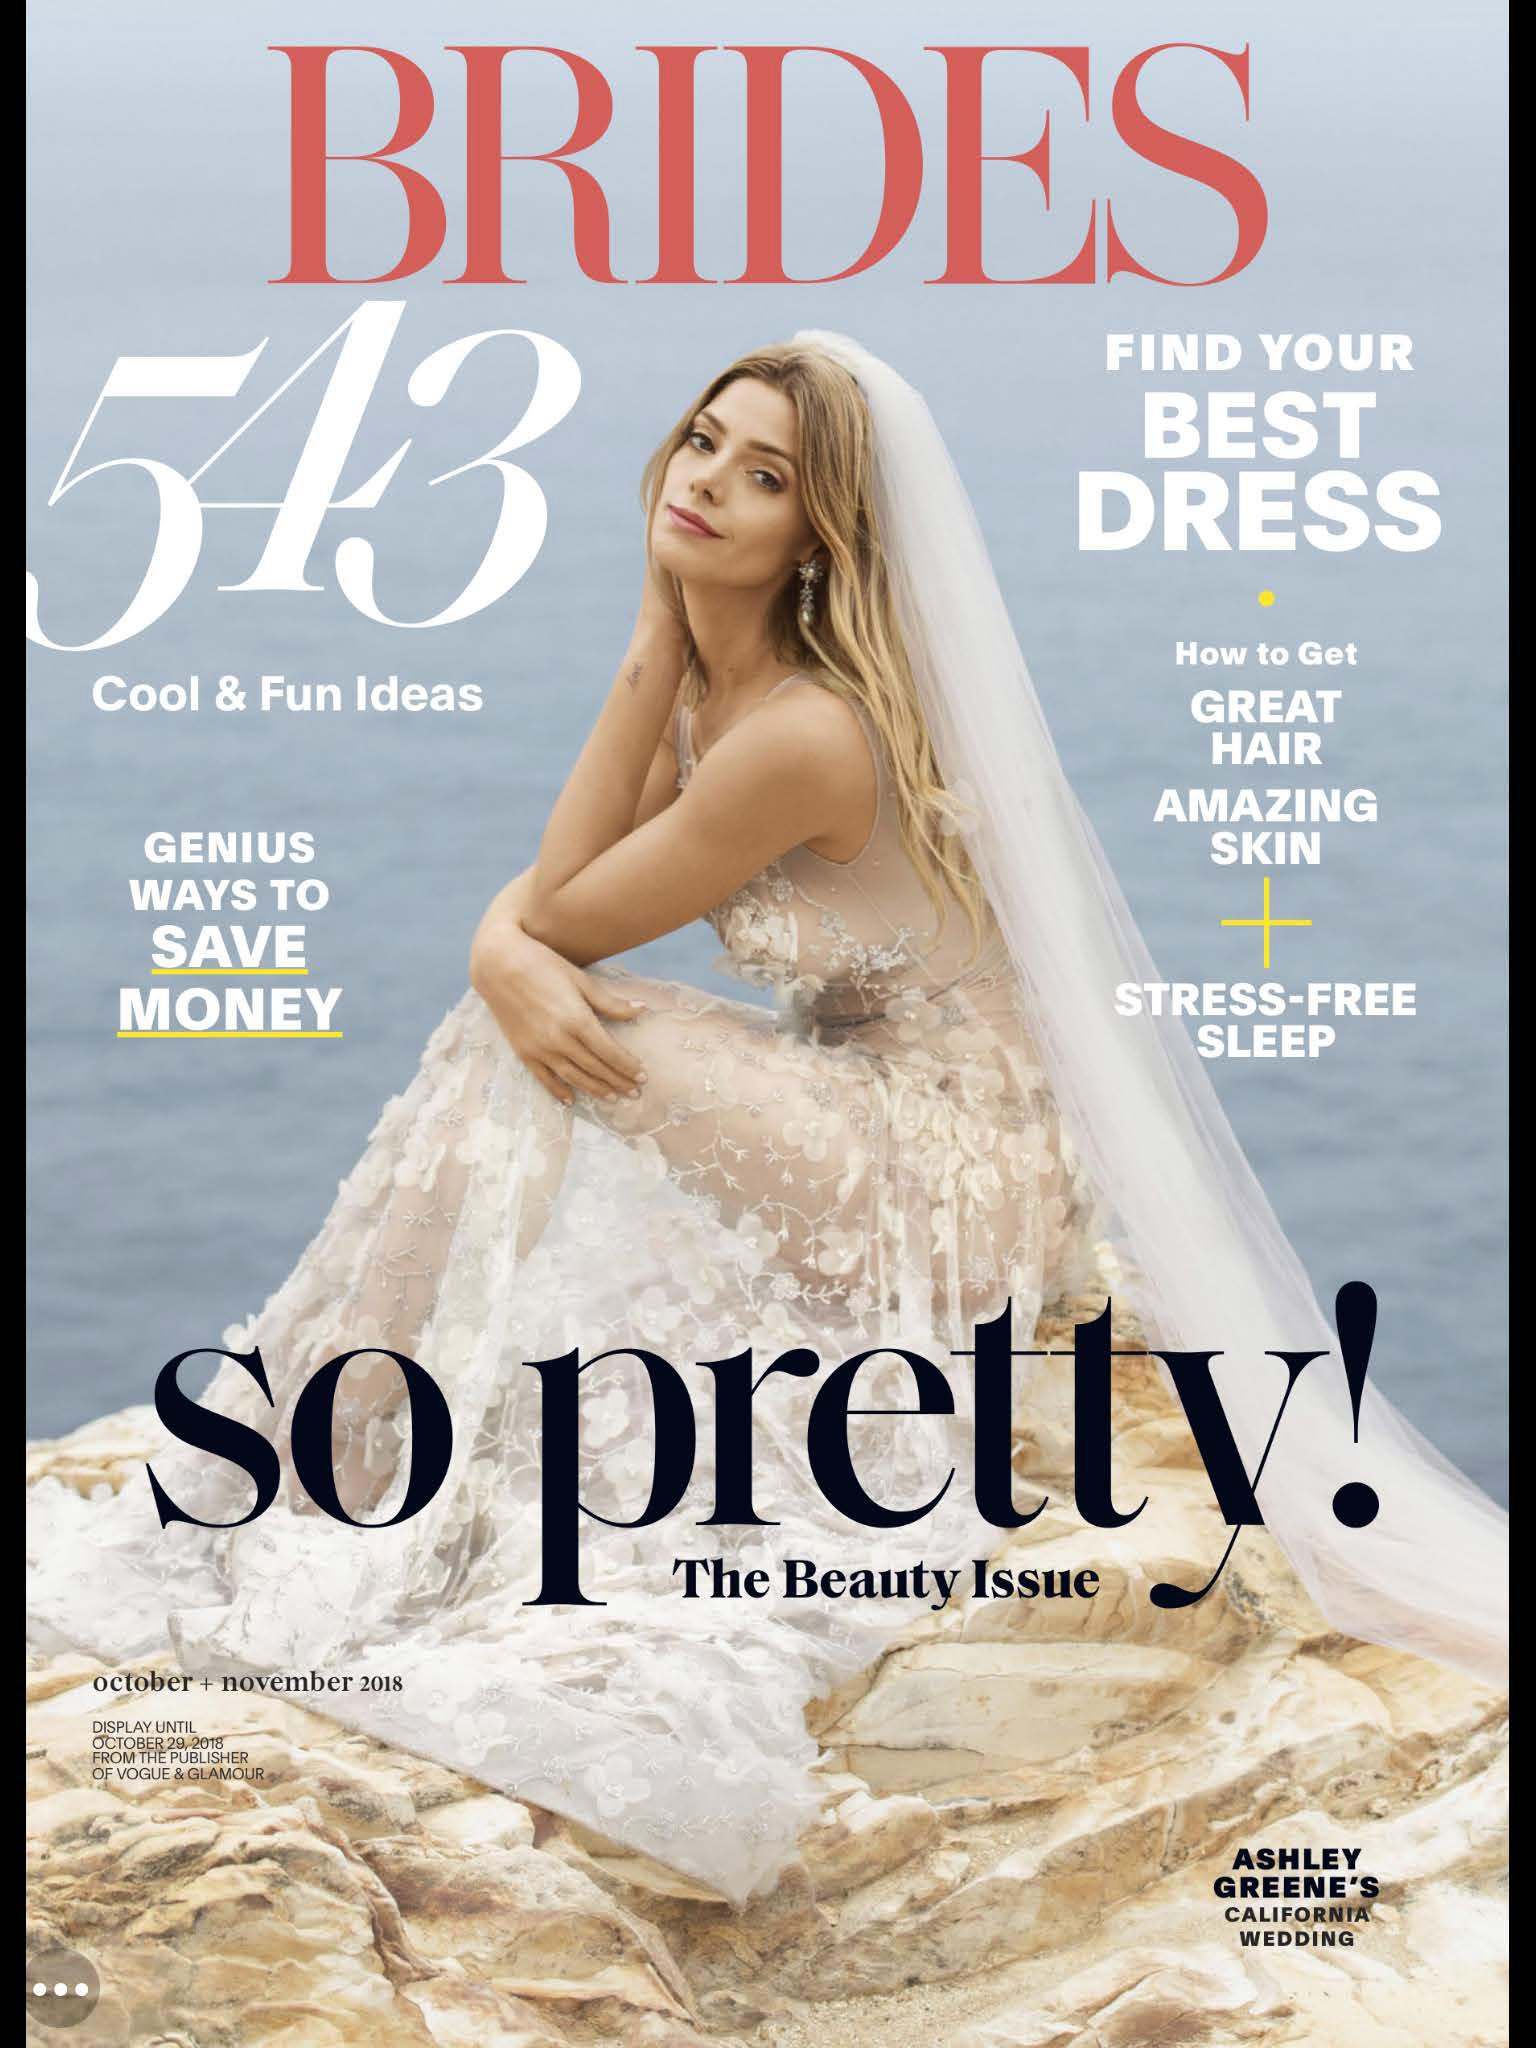 Dr. Devgan interviewed for Brides Magazine fall 2018 issue, It's T-minus how many months till you get married? Here's how to look your best.  Some basic advice Dr. Devgan gives to all of her future brides is:1. Less is more,2. Keep it natural,3. Focus on playing up your assets,4. If you're thinking about a cosmetic enhancement, give yourself several months to make sure you love it. Almost all fillers are fully dissolvable, so this can also take away some of the apprehension